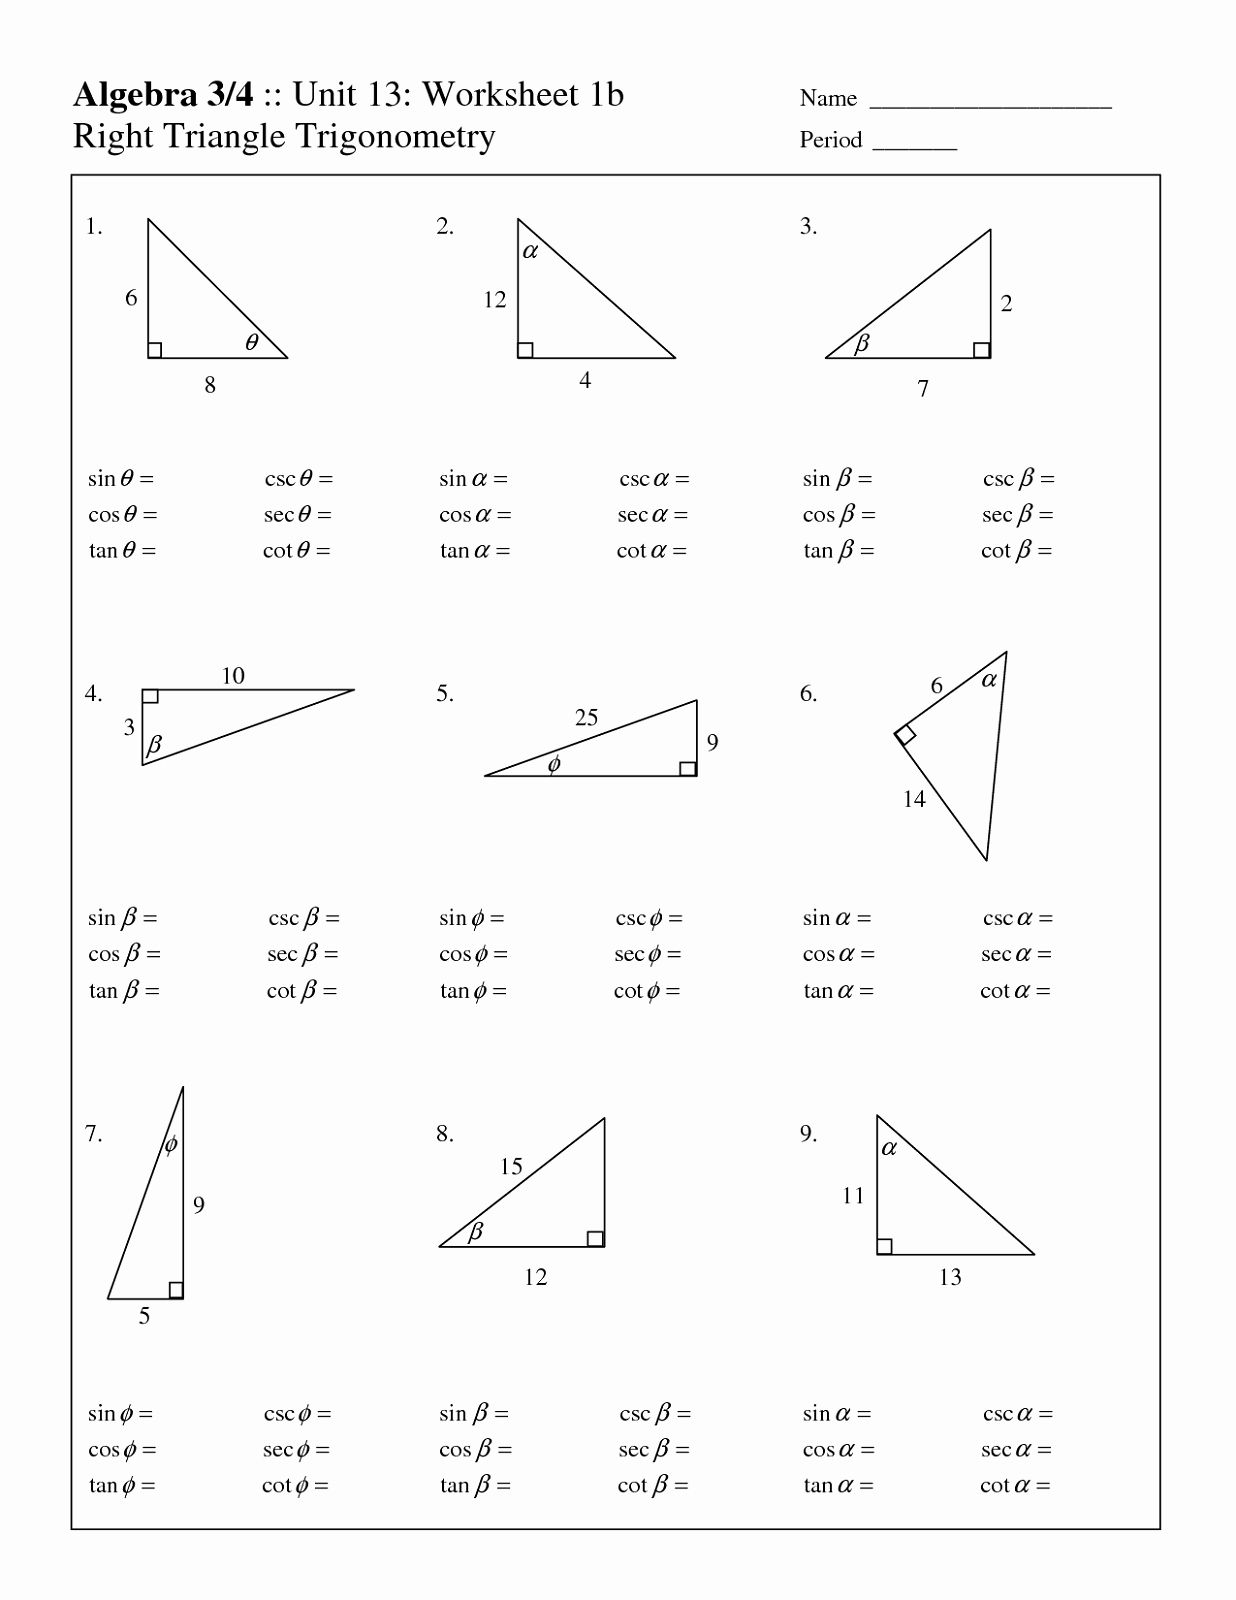 Right Triangle Trig Worksheet Answers Beautiful Free Fact